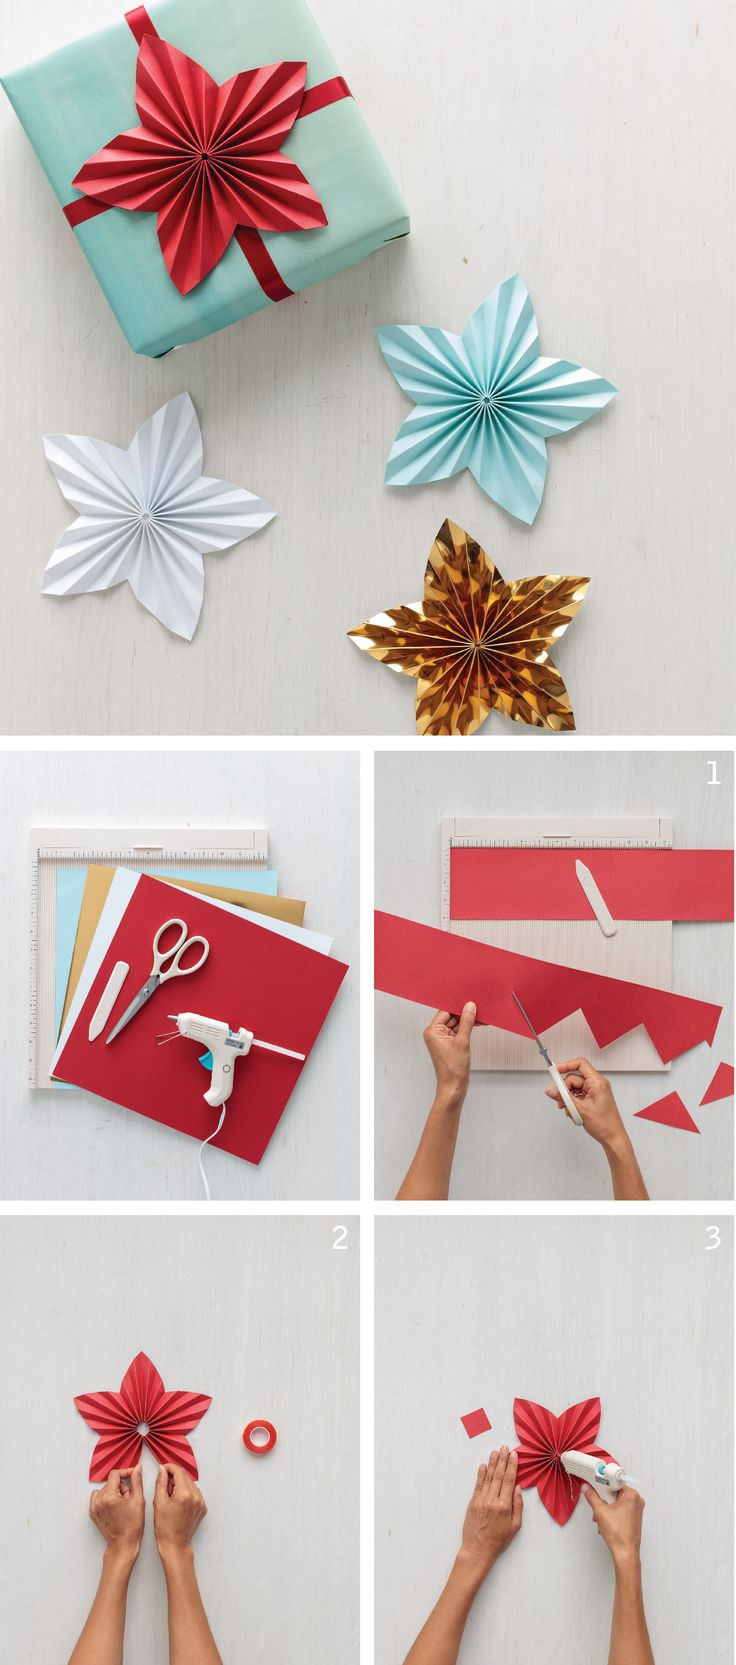 Christmas decorations using construction paper - Paper Star Gift Toppers